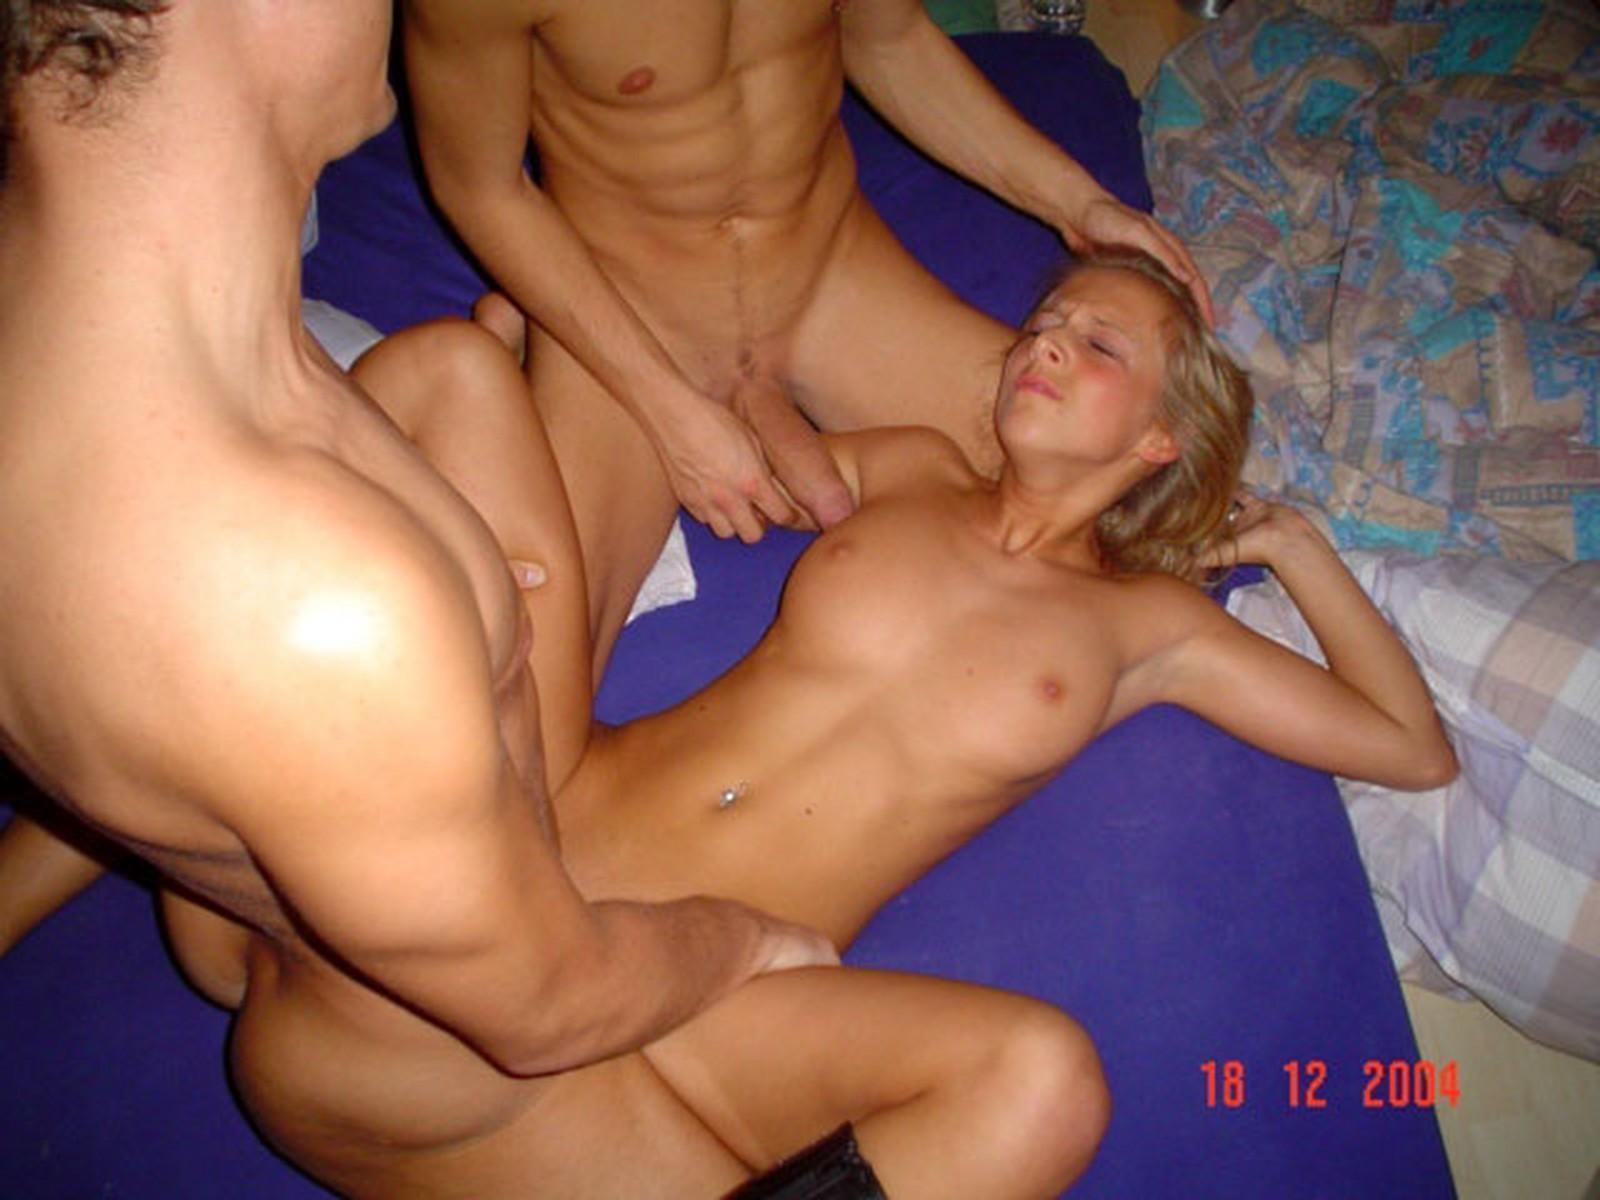 Bisexual Threesome 2 Guys